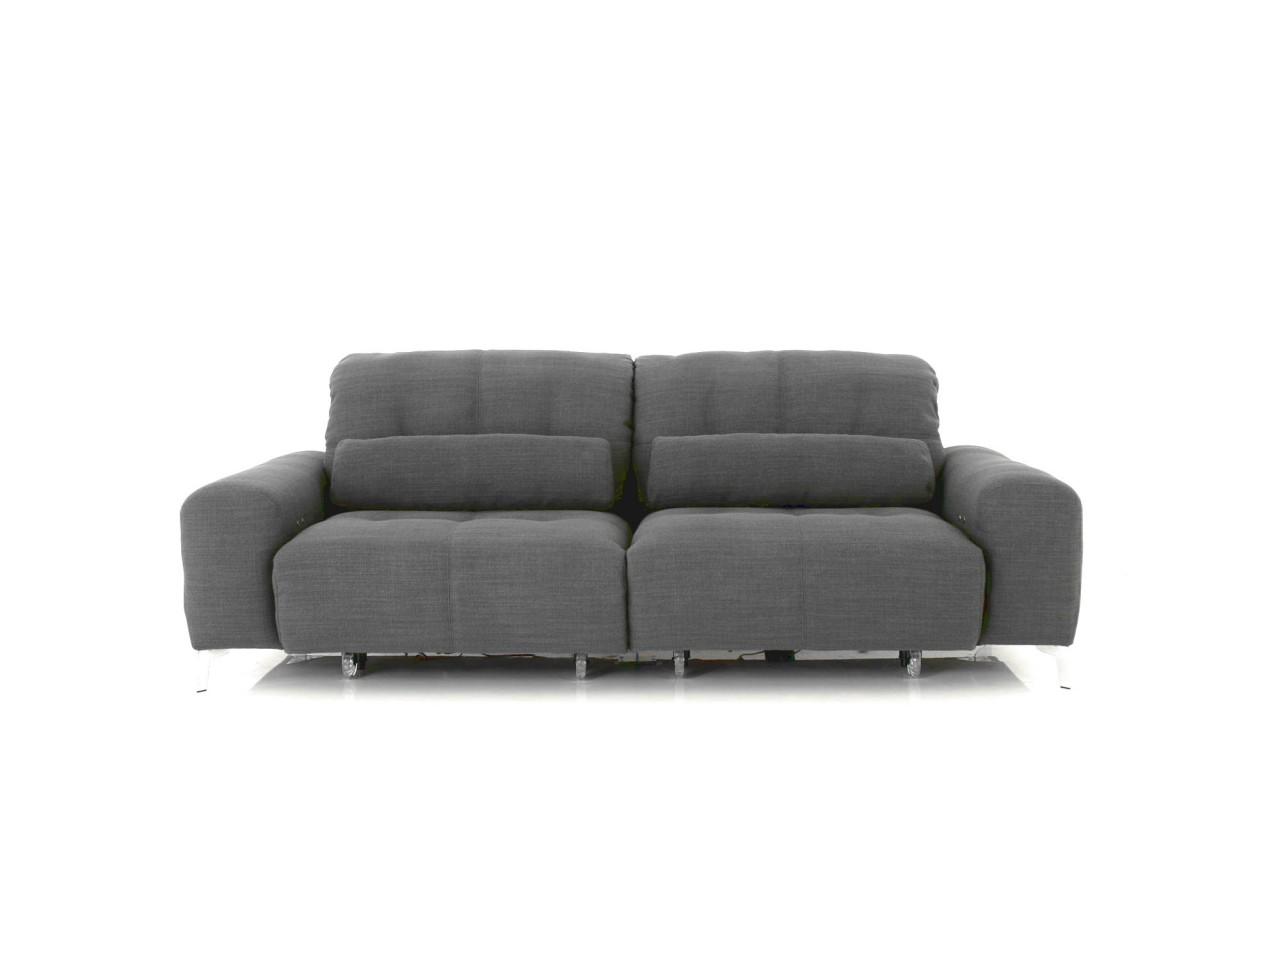 e schillig sofa awesome e schillig sofa interesting ewald brand preise with e schillig sofa. Black Bedroom Furniture Sets. Home Design Ideas